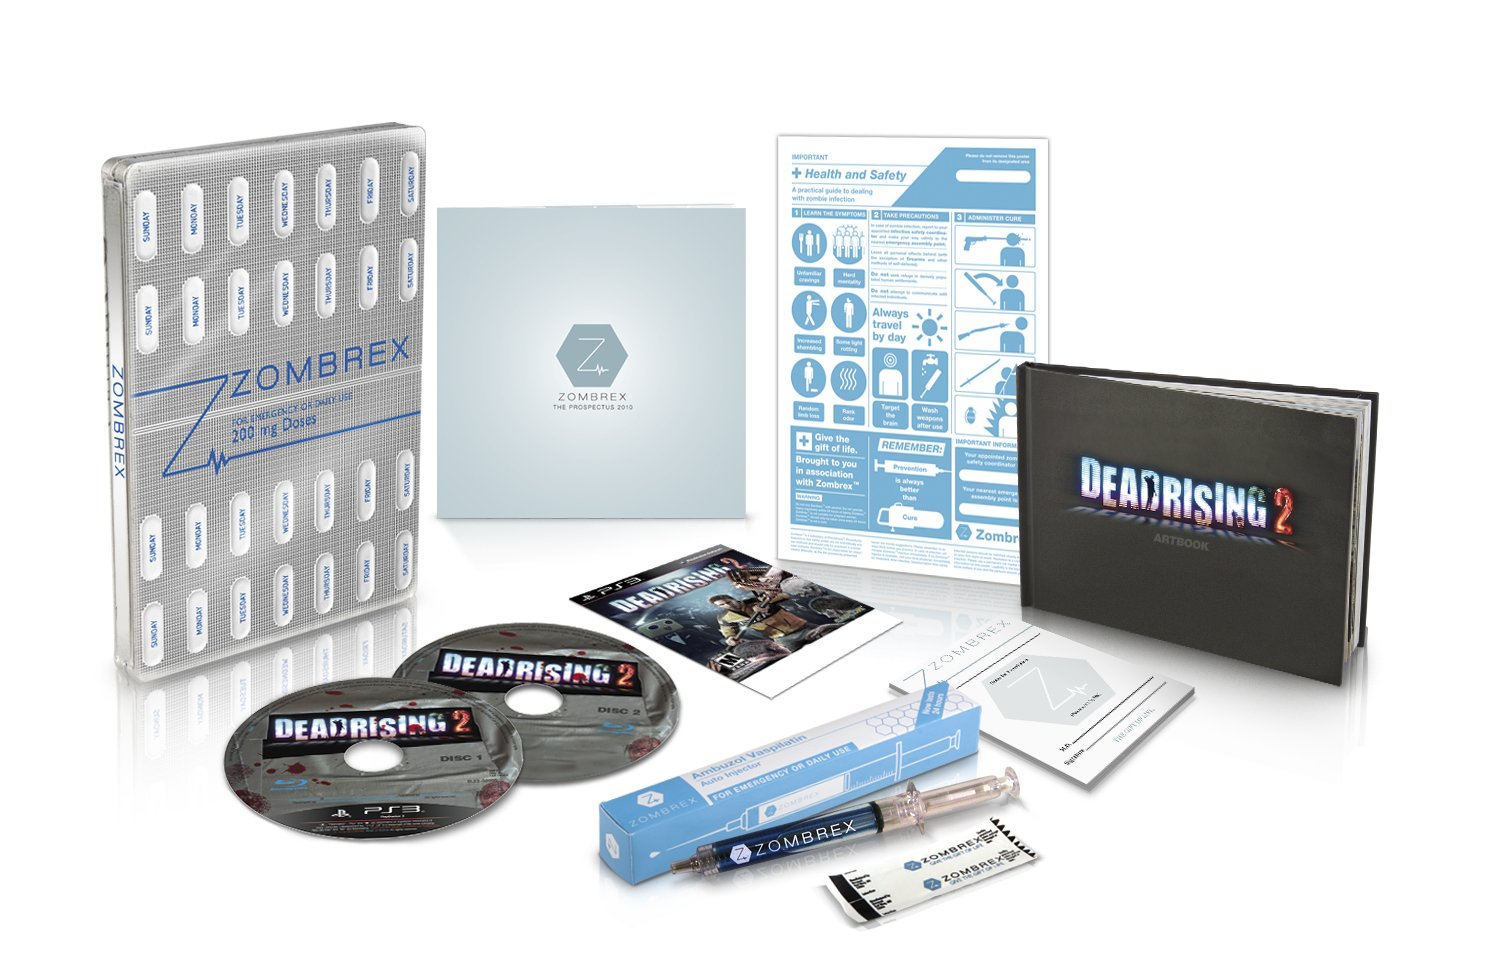 Dead Rising 2 Collector's Luxury goods - Edition Playstation 3 OFFicial site